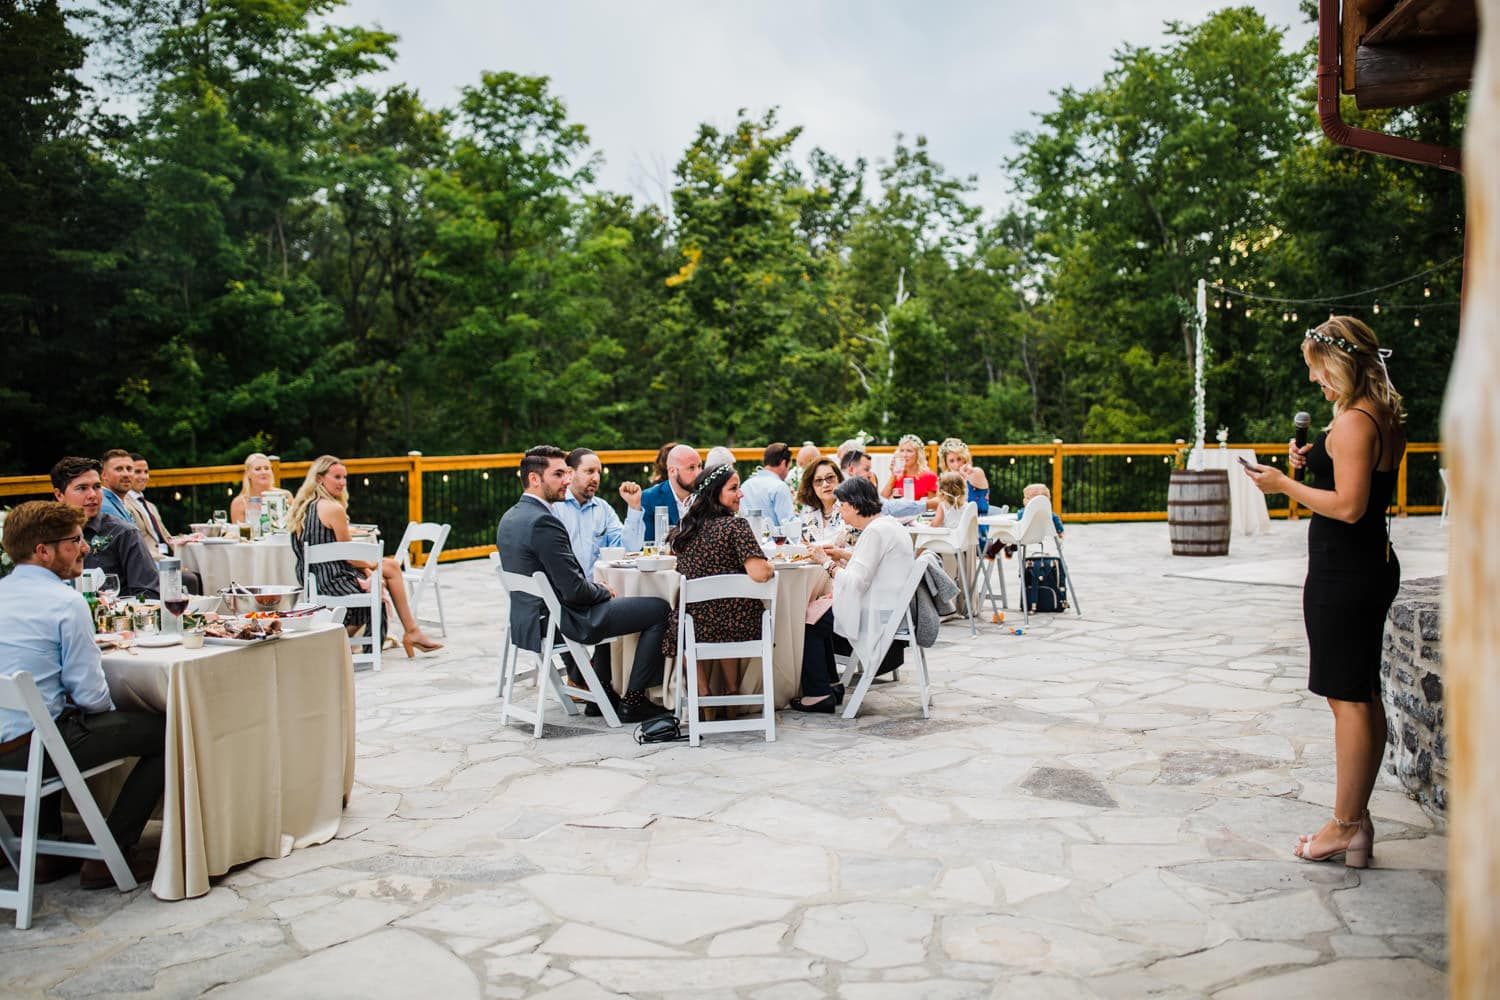 maid of honour stands up for speech on stone patio at outdoor wedding reception - ottawa wedding photographer